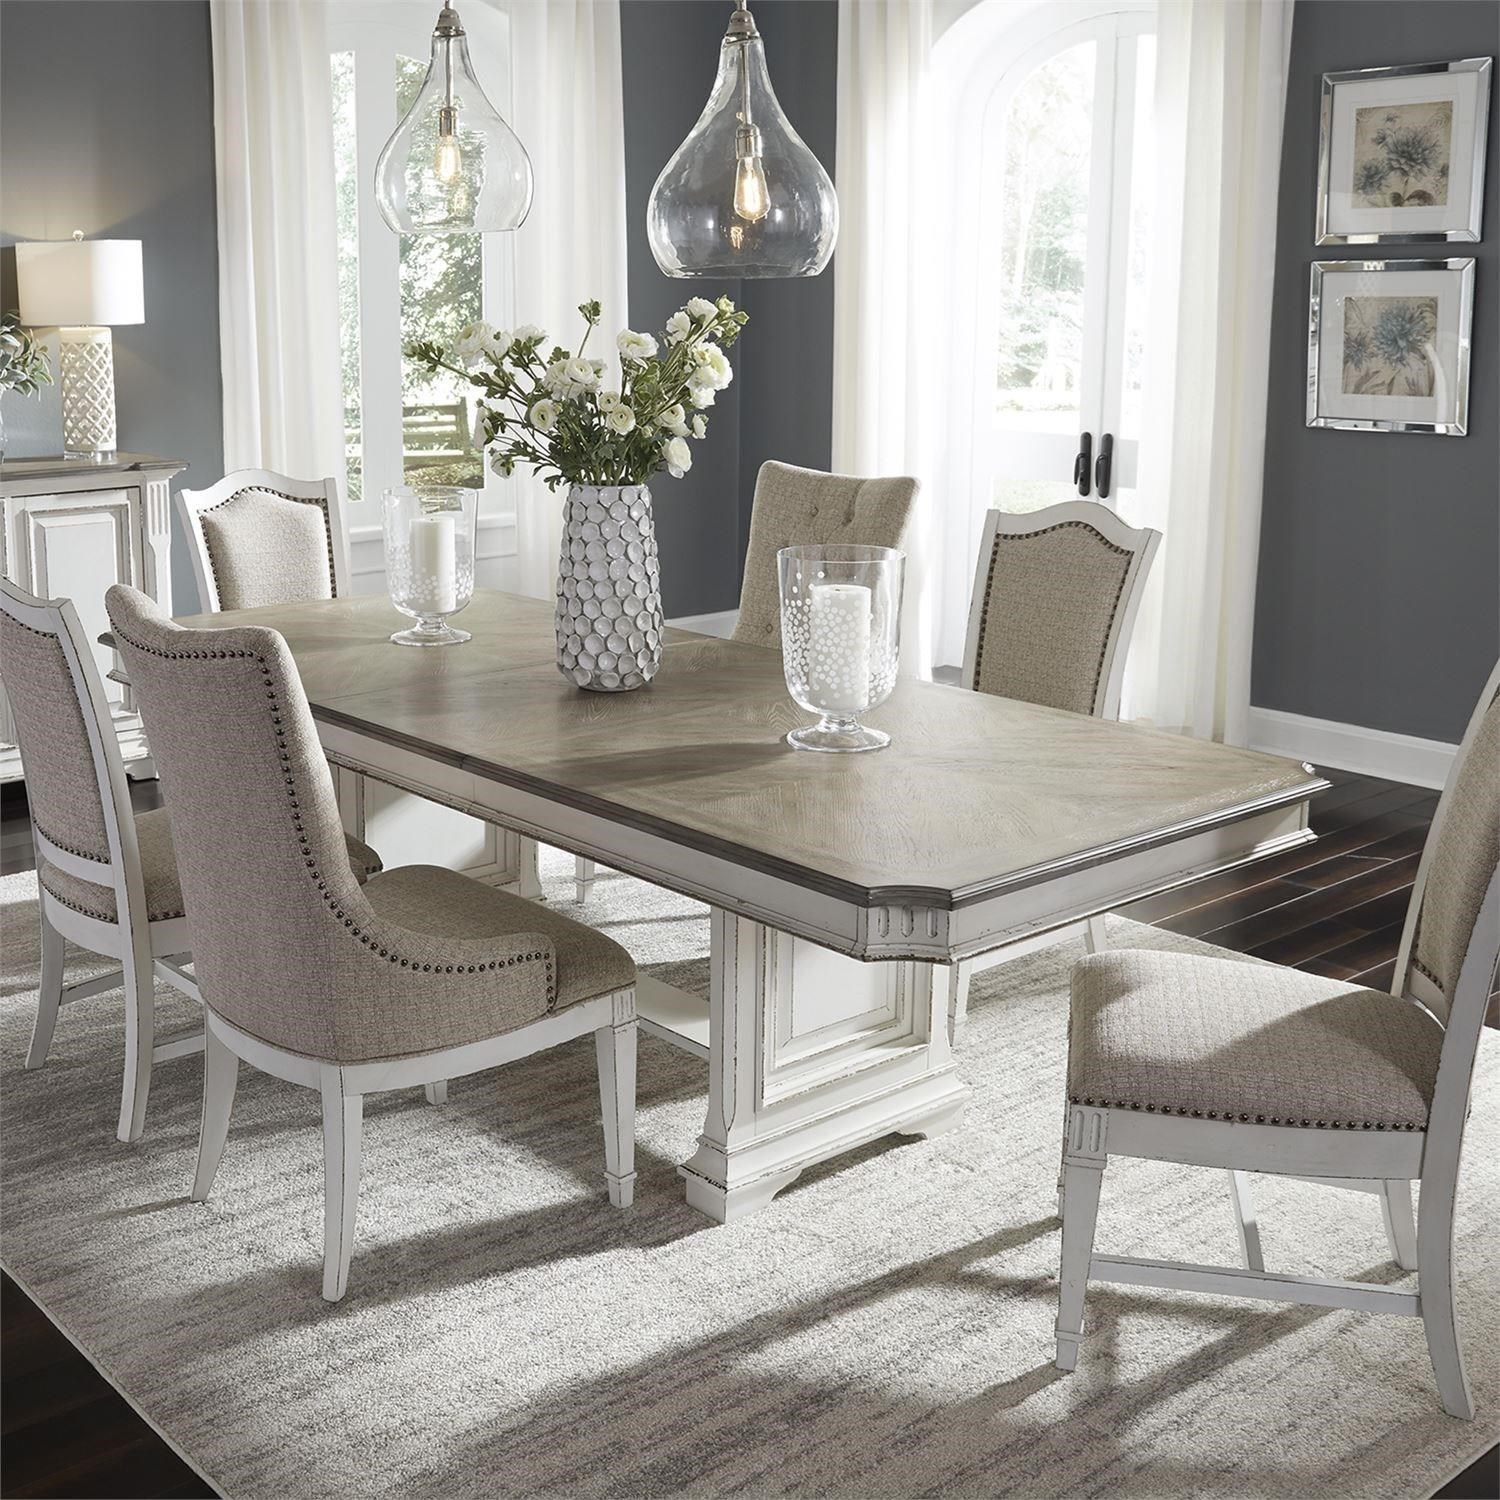 Abbey Park 7 Piece Trestle Table Set  by Freedom Furniture at Ruby Gordon Home